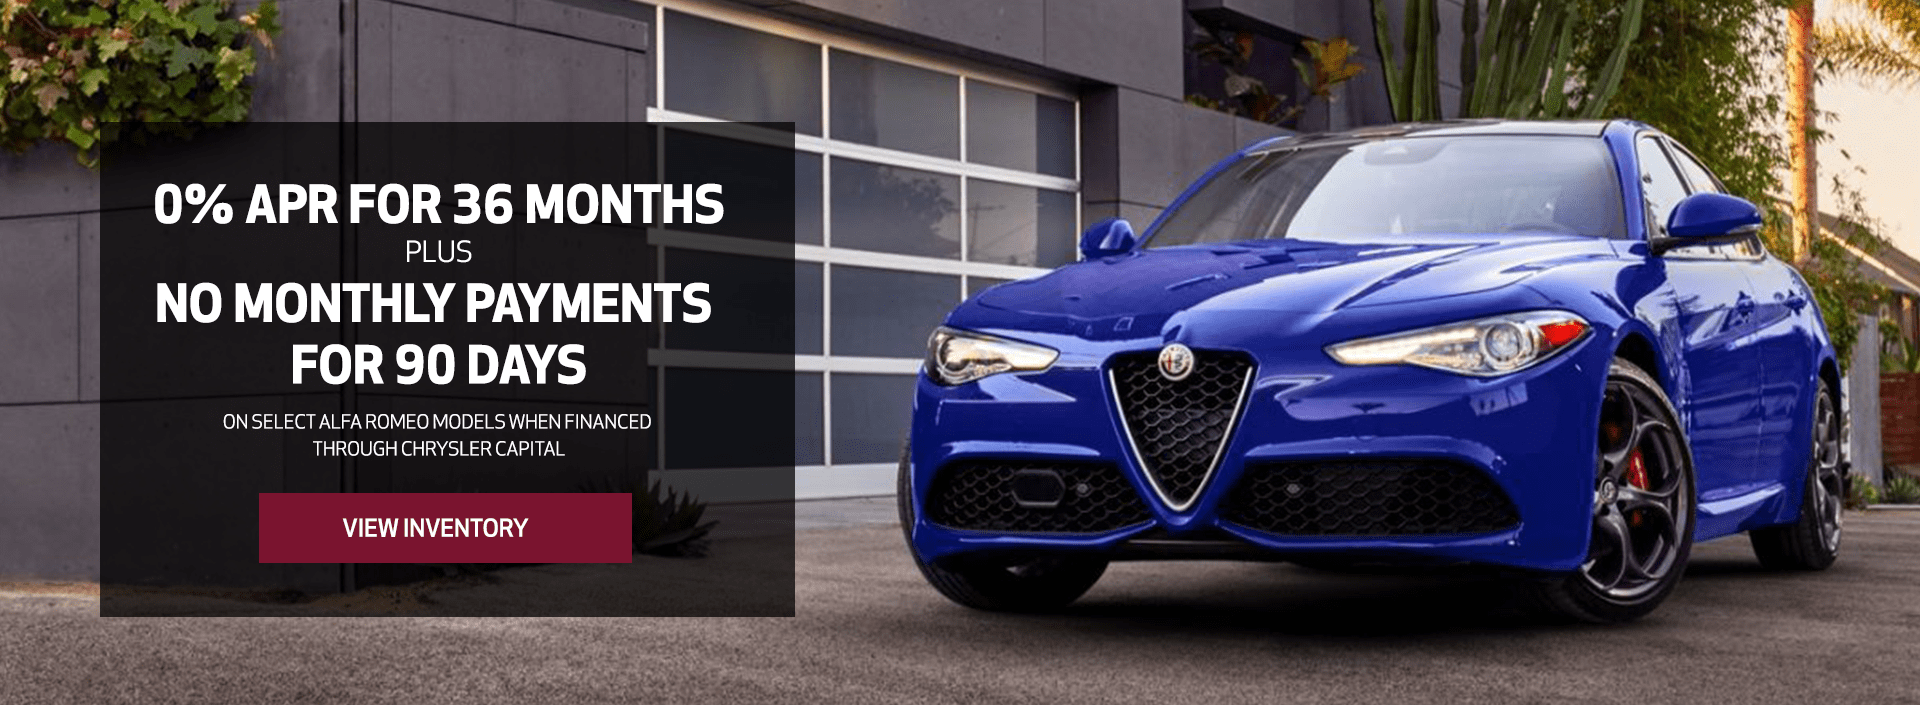 0% APR plus NO PAYMENTS for 90 days